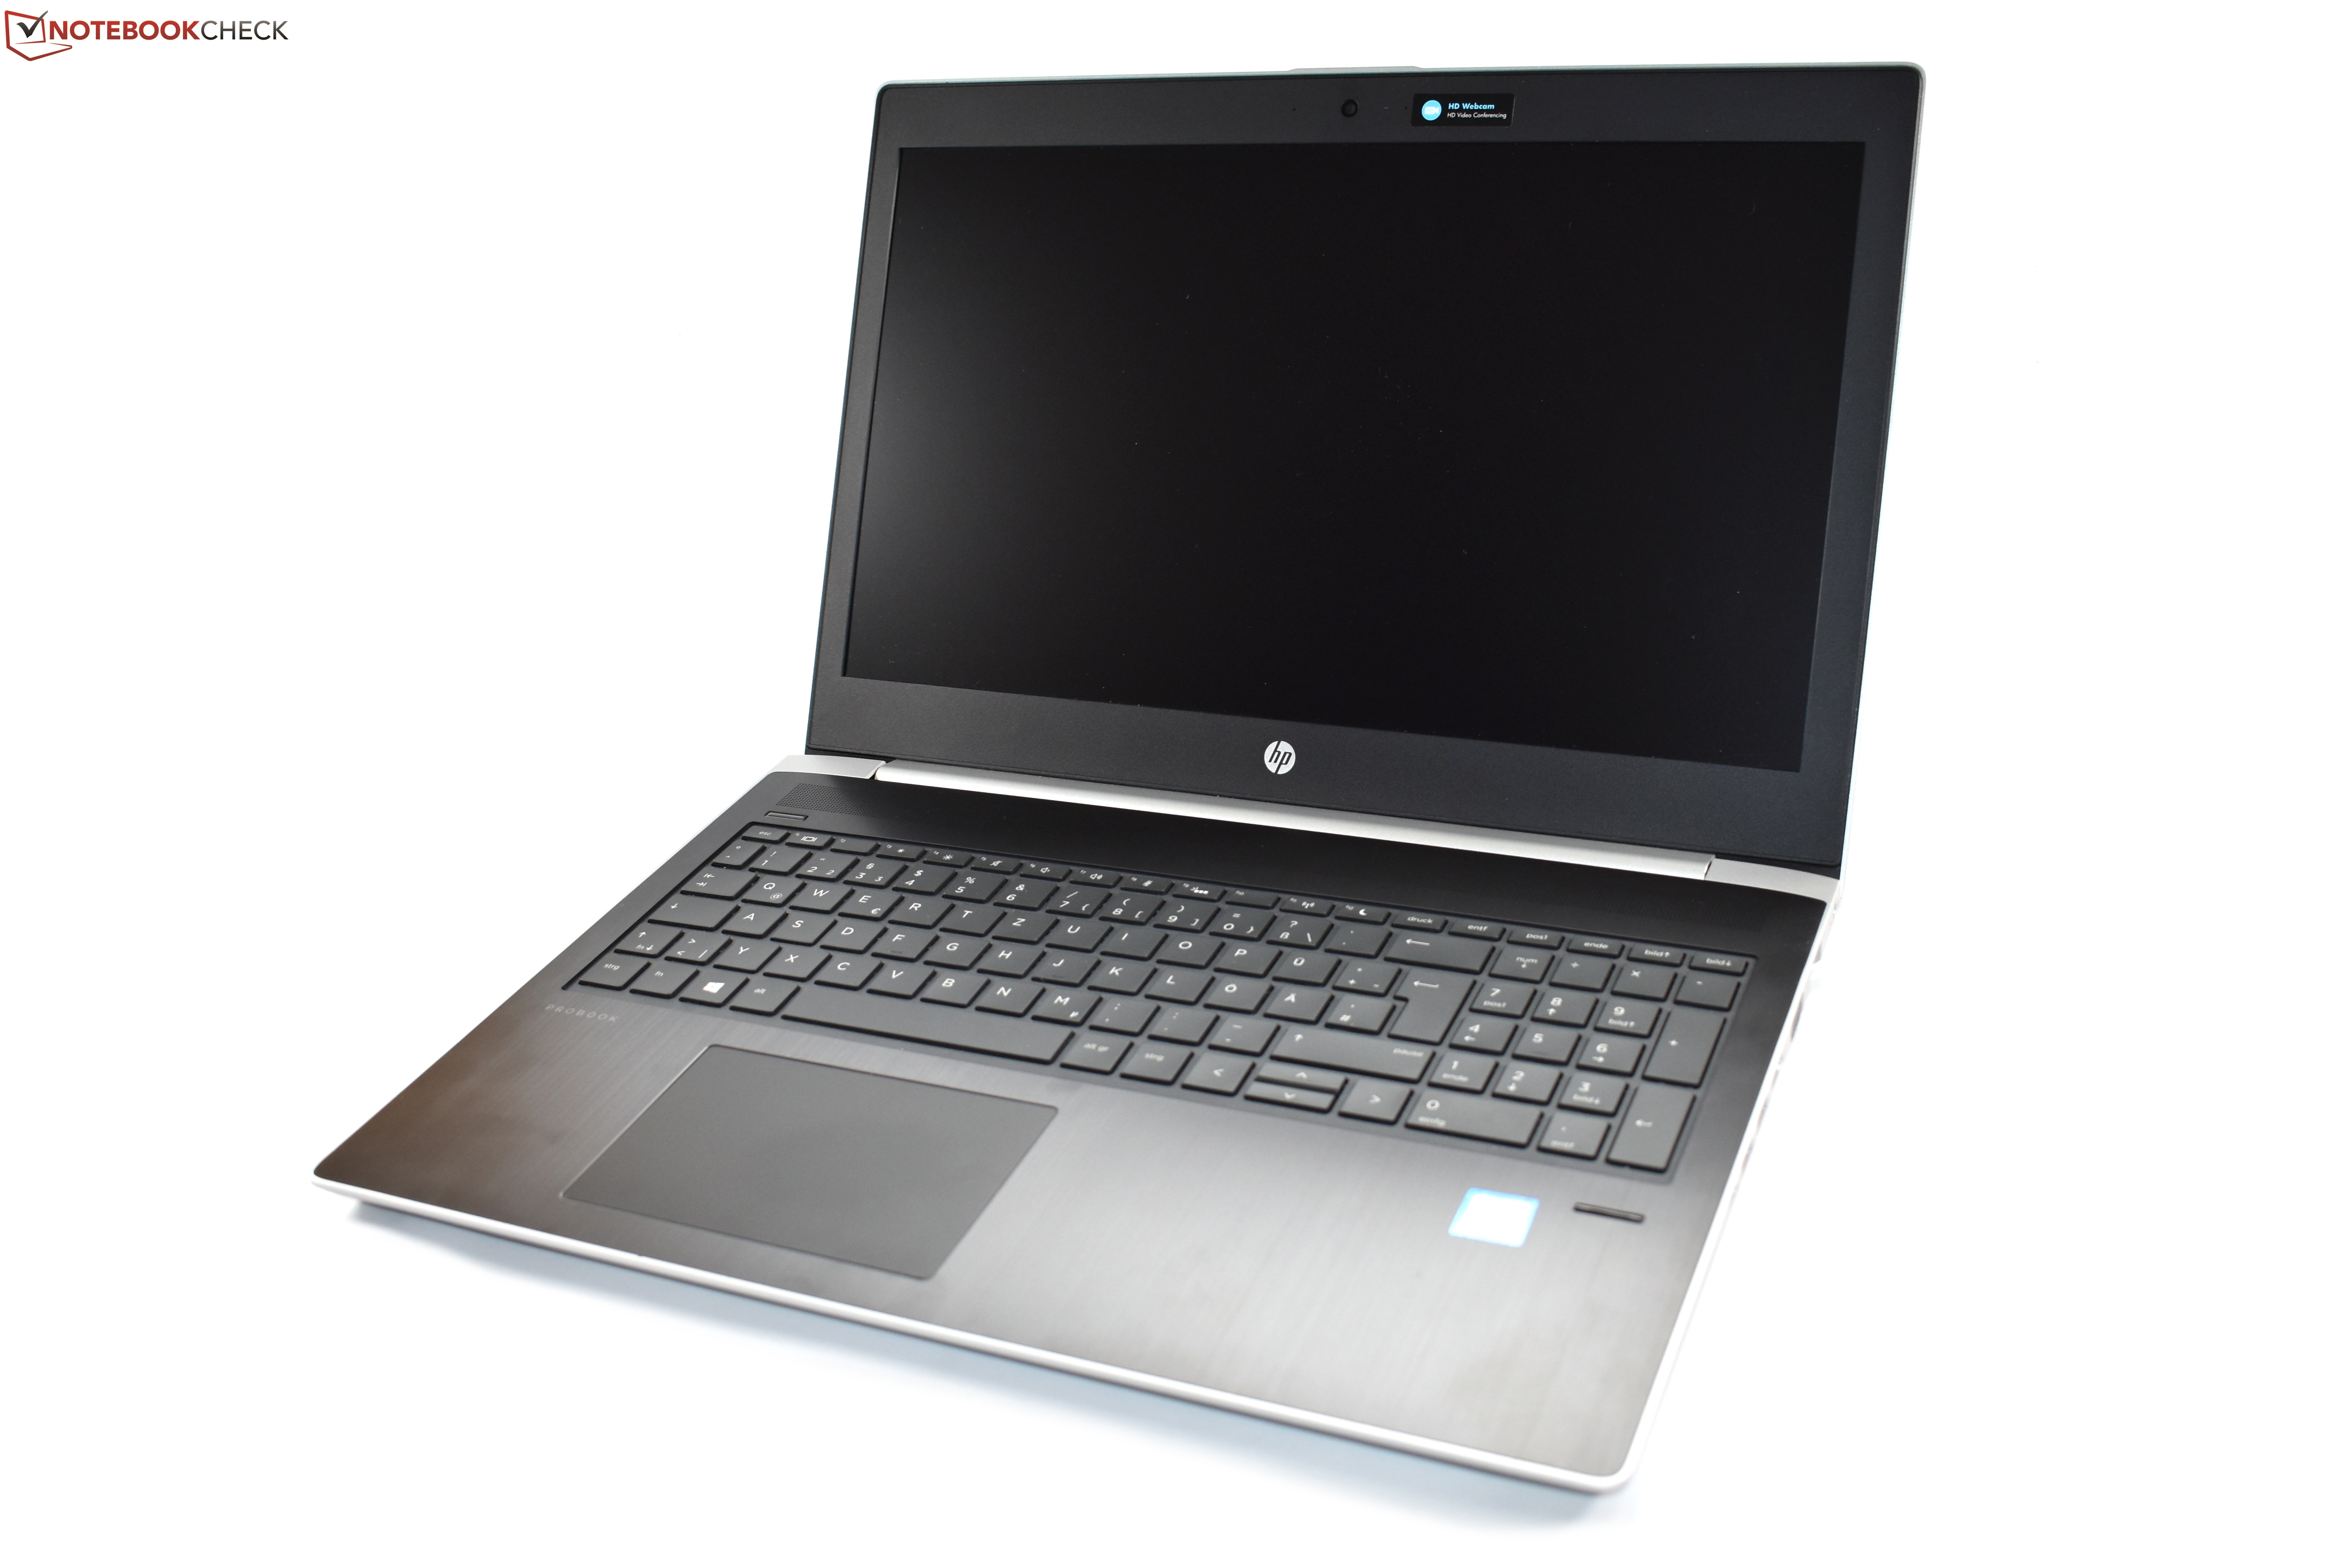 HP ProBook 450 G5 (i5-8250U, FHD) Laptop Review